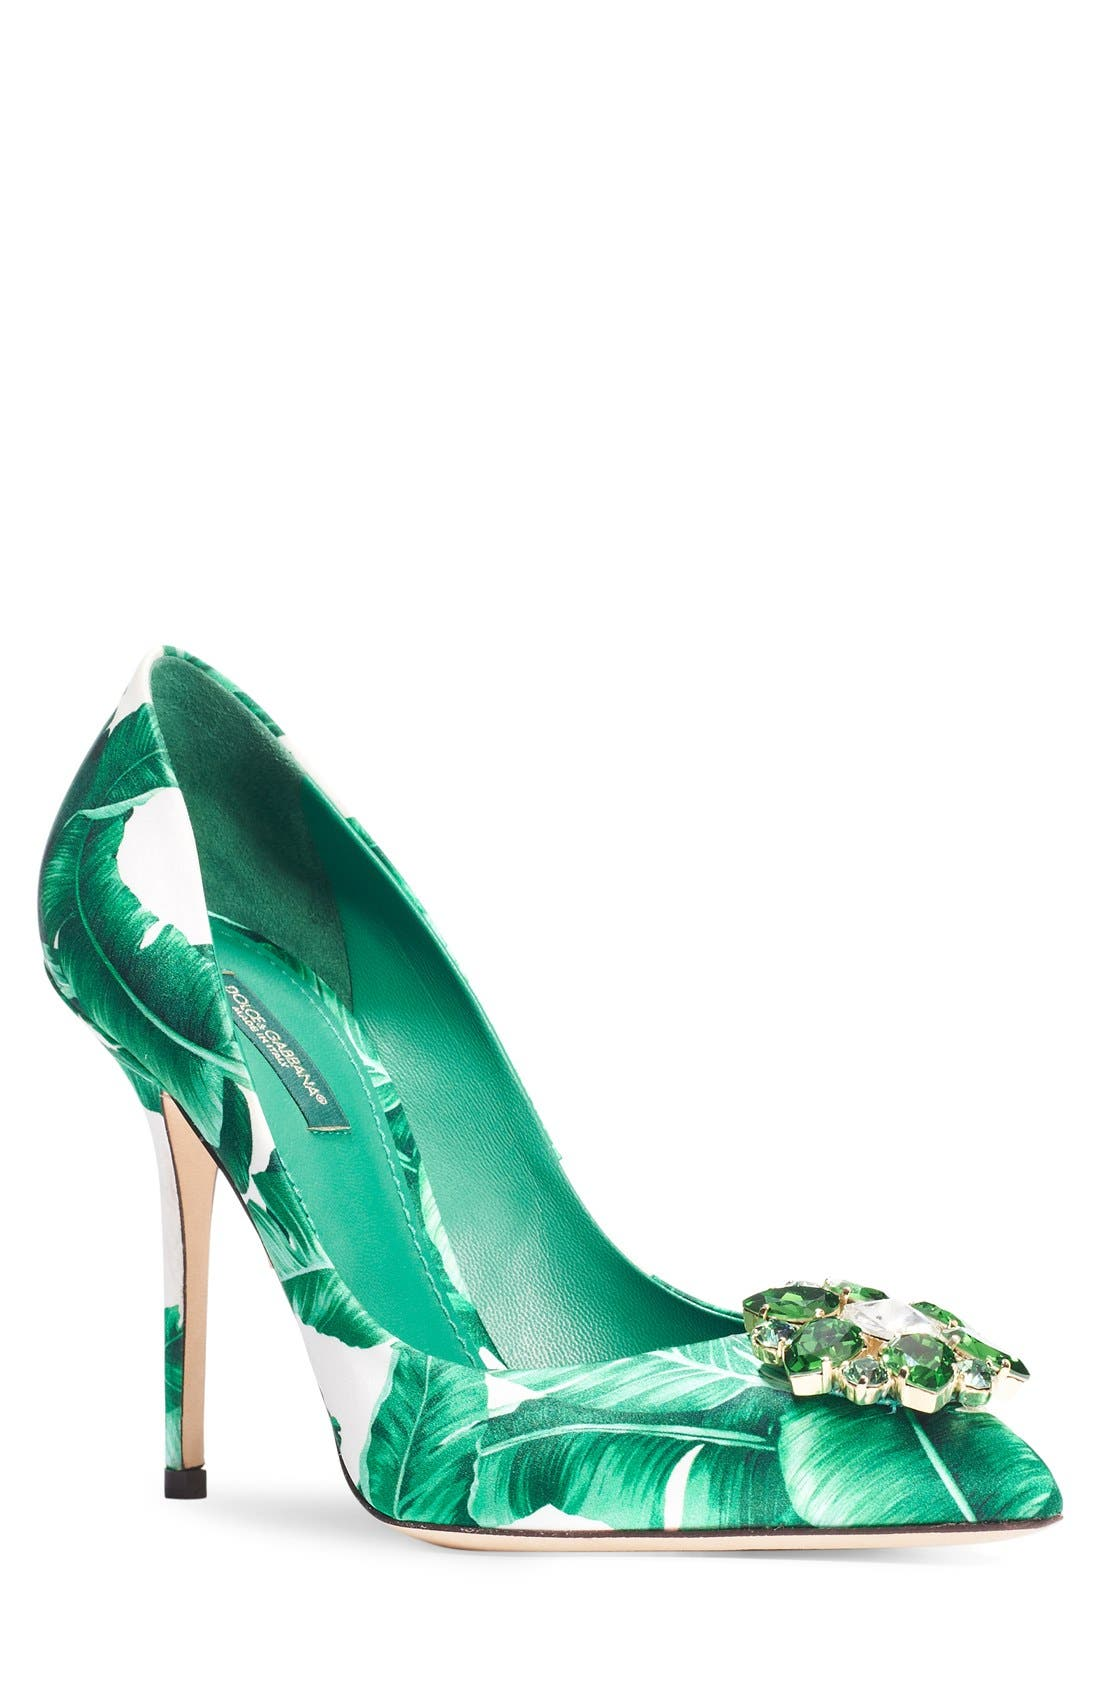 Alternate Image 1 Selected - Dolce&Gabbana Banana Leaf Pointy Toe Pump (Women)